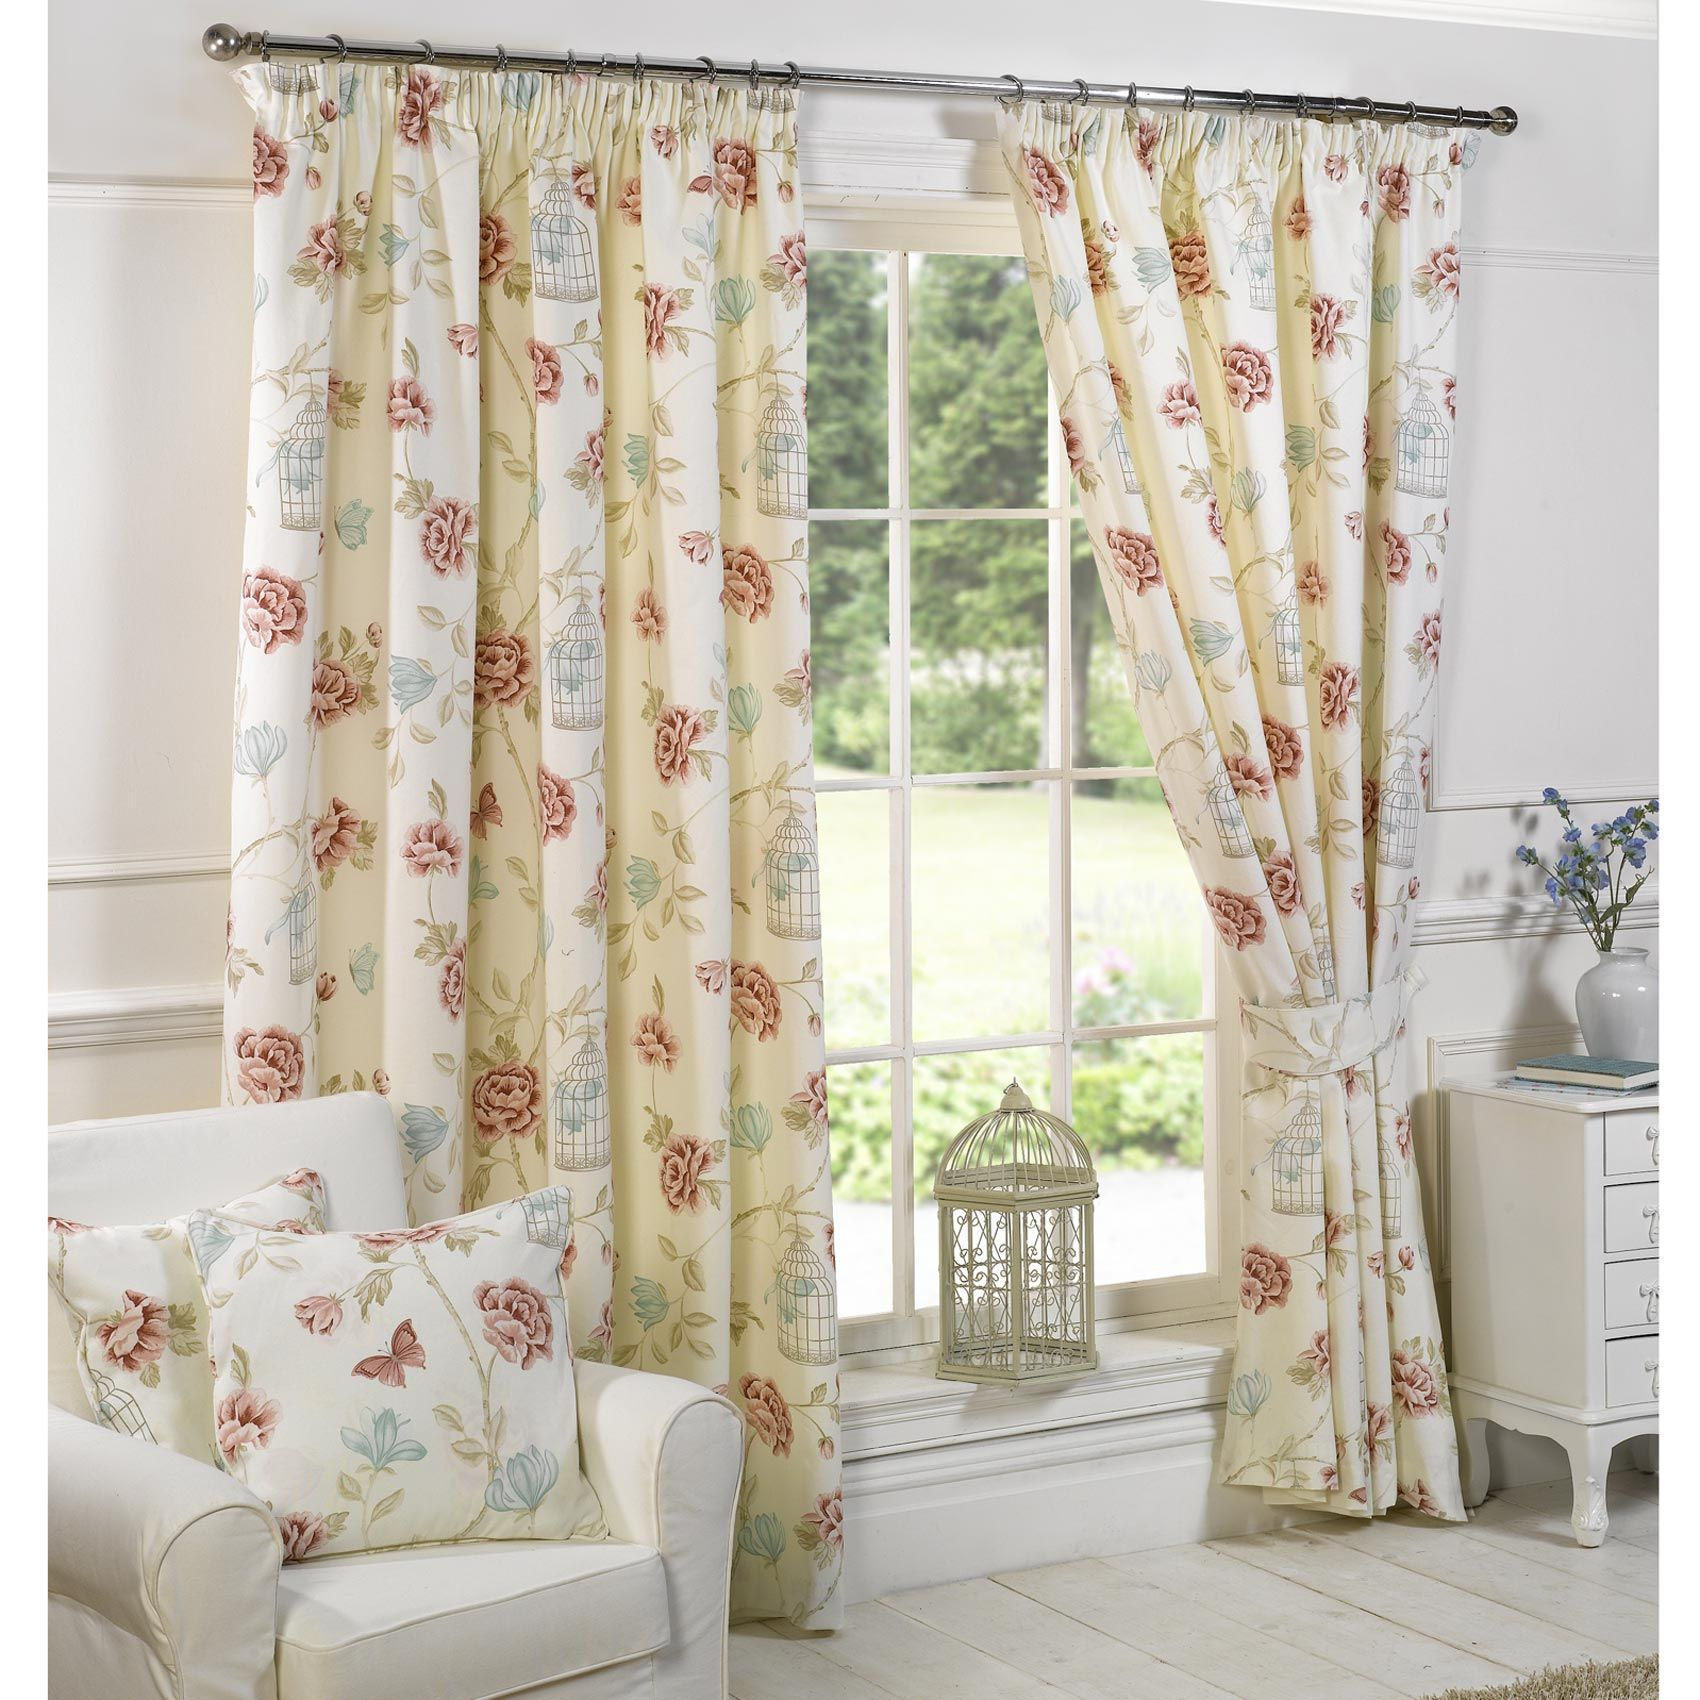 Vintage Curtains For Your Exclusive Home Interior Goodworksfurniture In 2020 Shabby Chic Curtains Retro Curtains Bedroom Vintage #shabby #chic #living #room #curtains